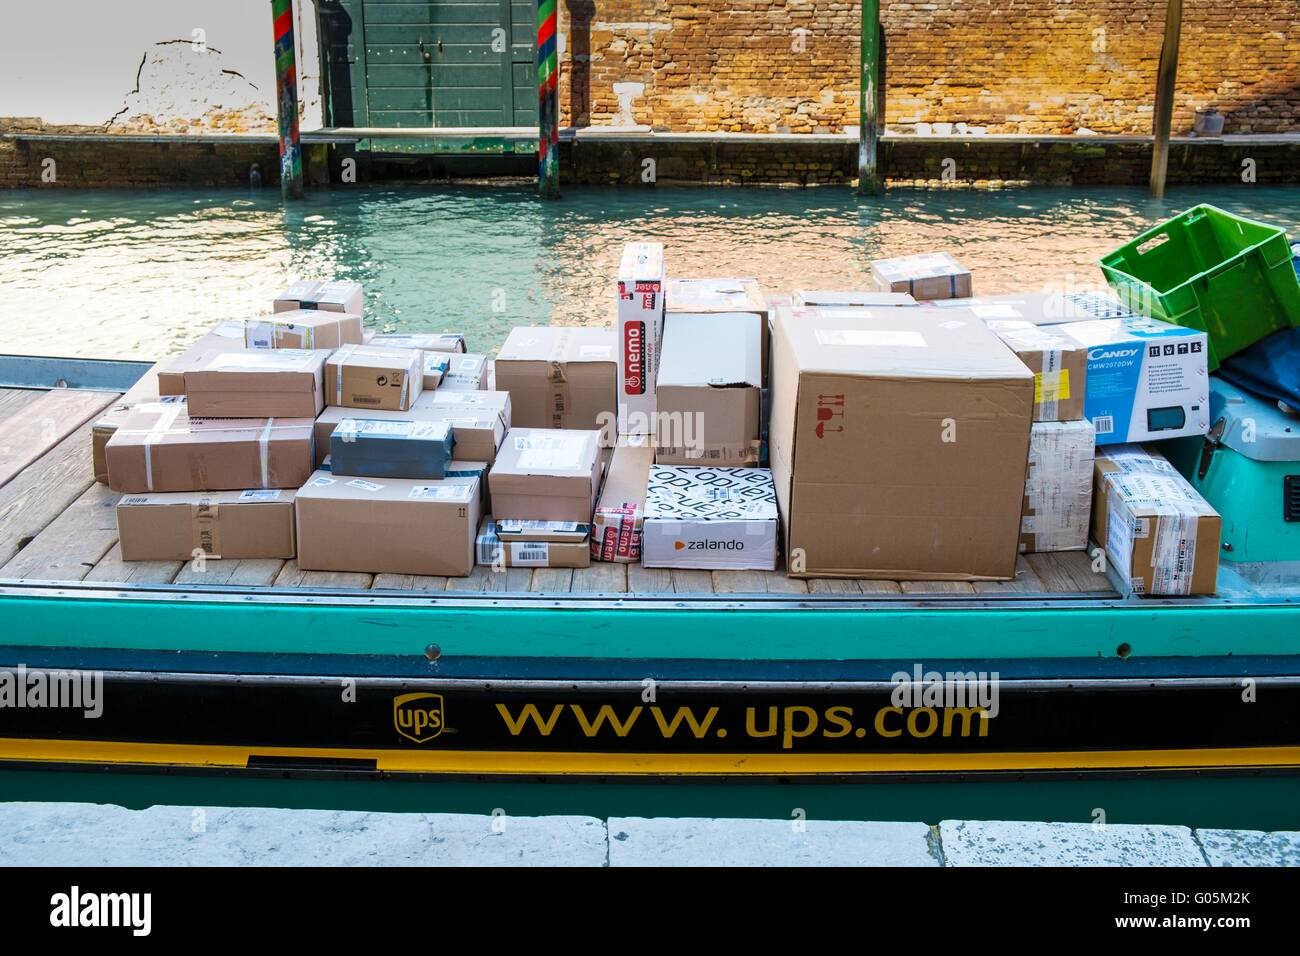 Parcels awaiting delivery on a UPS delivery boat, Venice, Italy, April - Stock Image